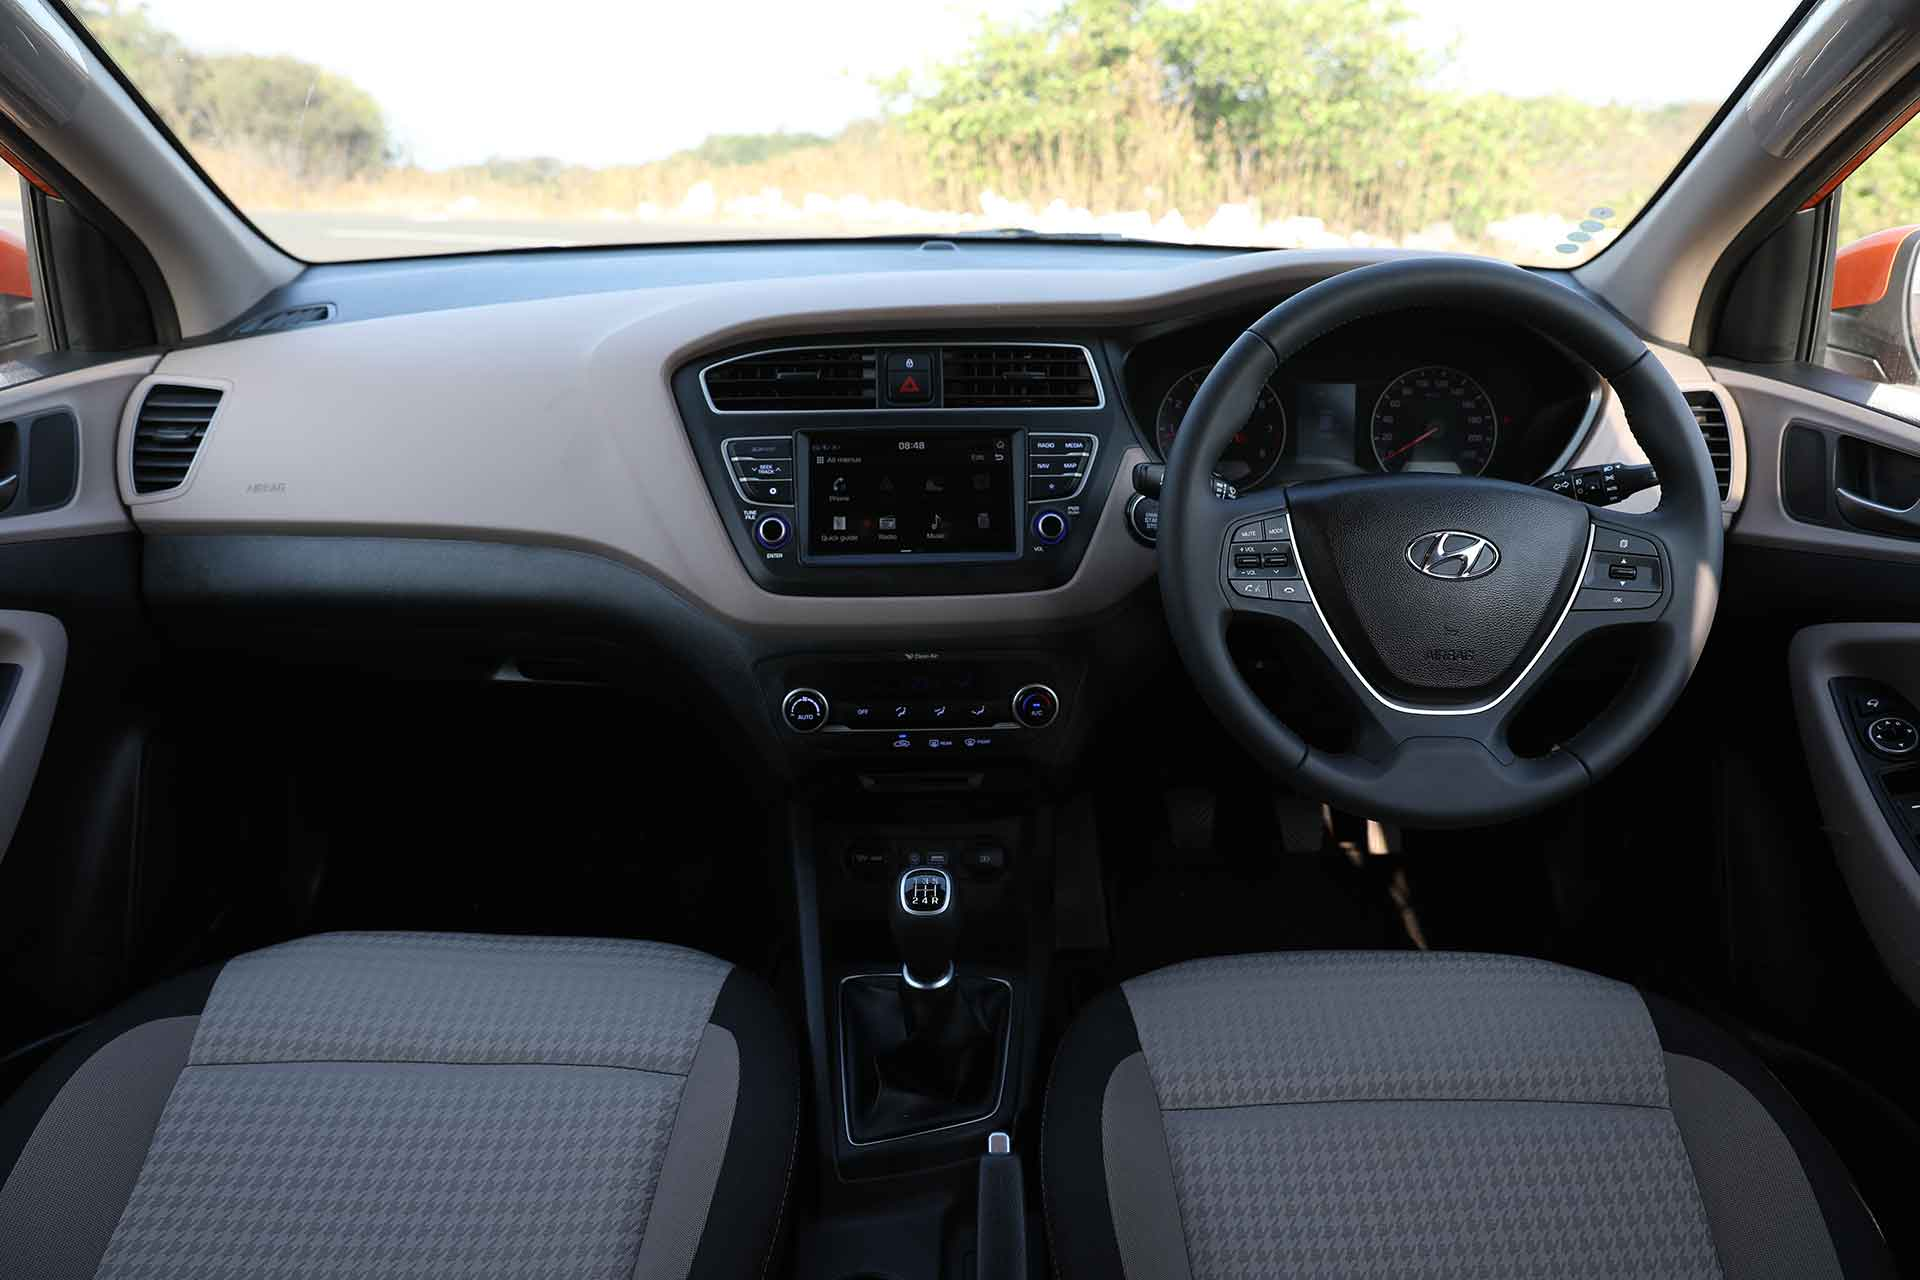 2018 Hyundai Elite i20 Interior